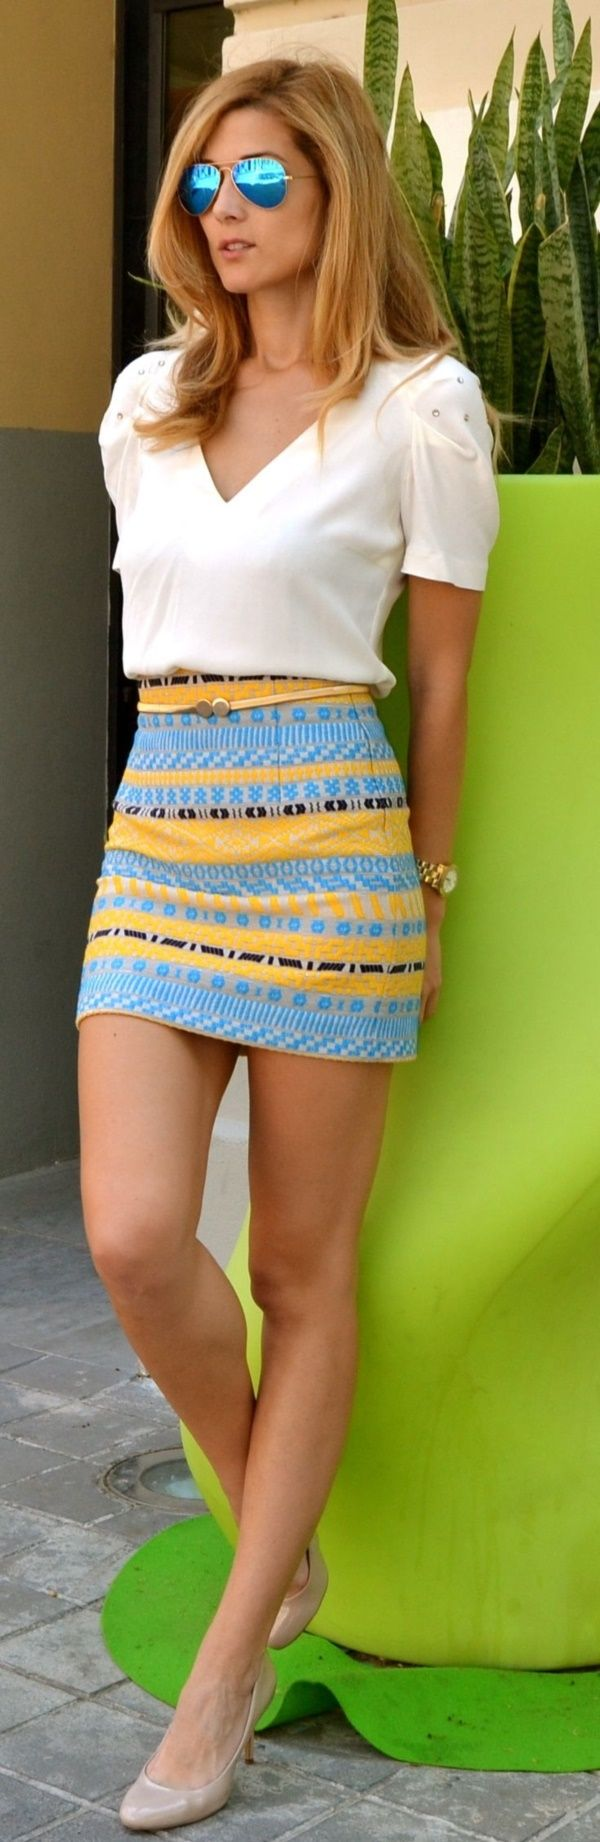 Cute And Sexy Skirts To Wear In Summer 2016:We are sure that you have noted the points that we have given here and taken a good look at all the images we have given here. But before you go ahead and try some of them, do give due importance to fitness and grooming so that you rock the look.